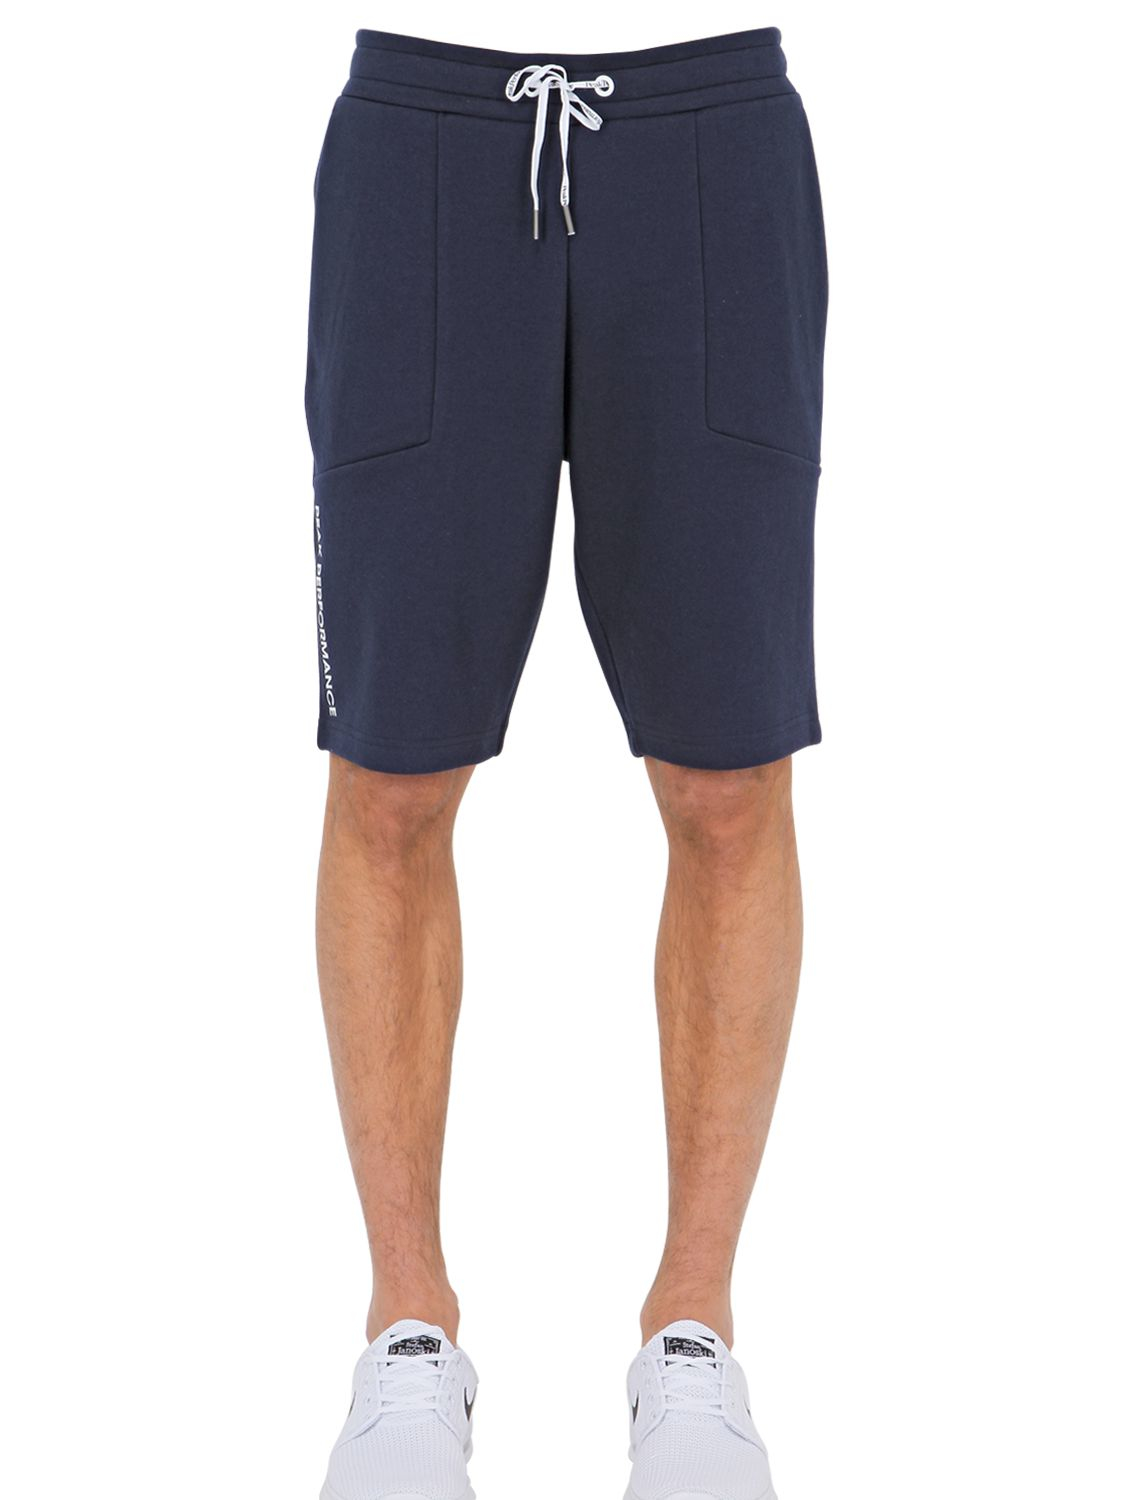 234aae3aa5 Peak Performance Cotton Blend Jogging Shorts in Blue for Men - Lyst